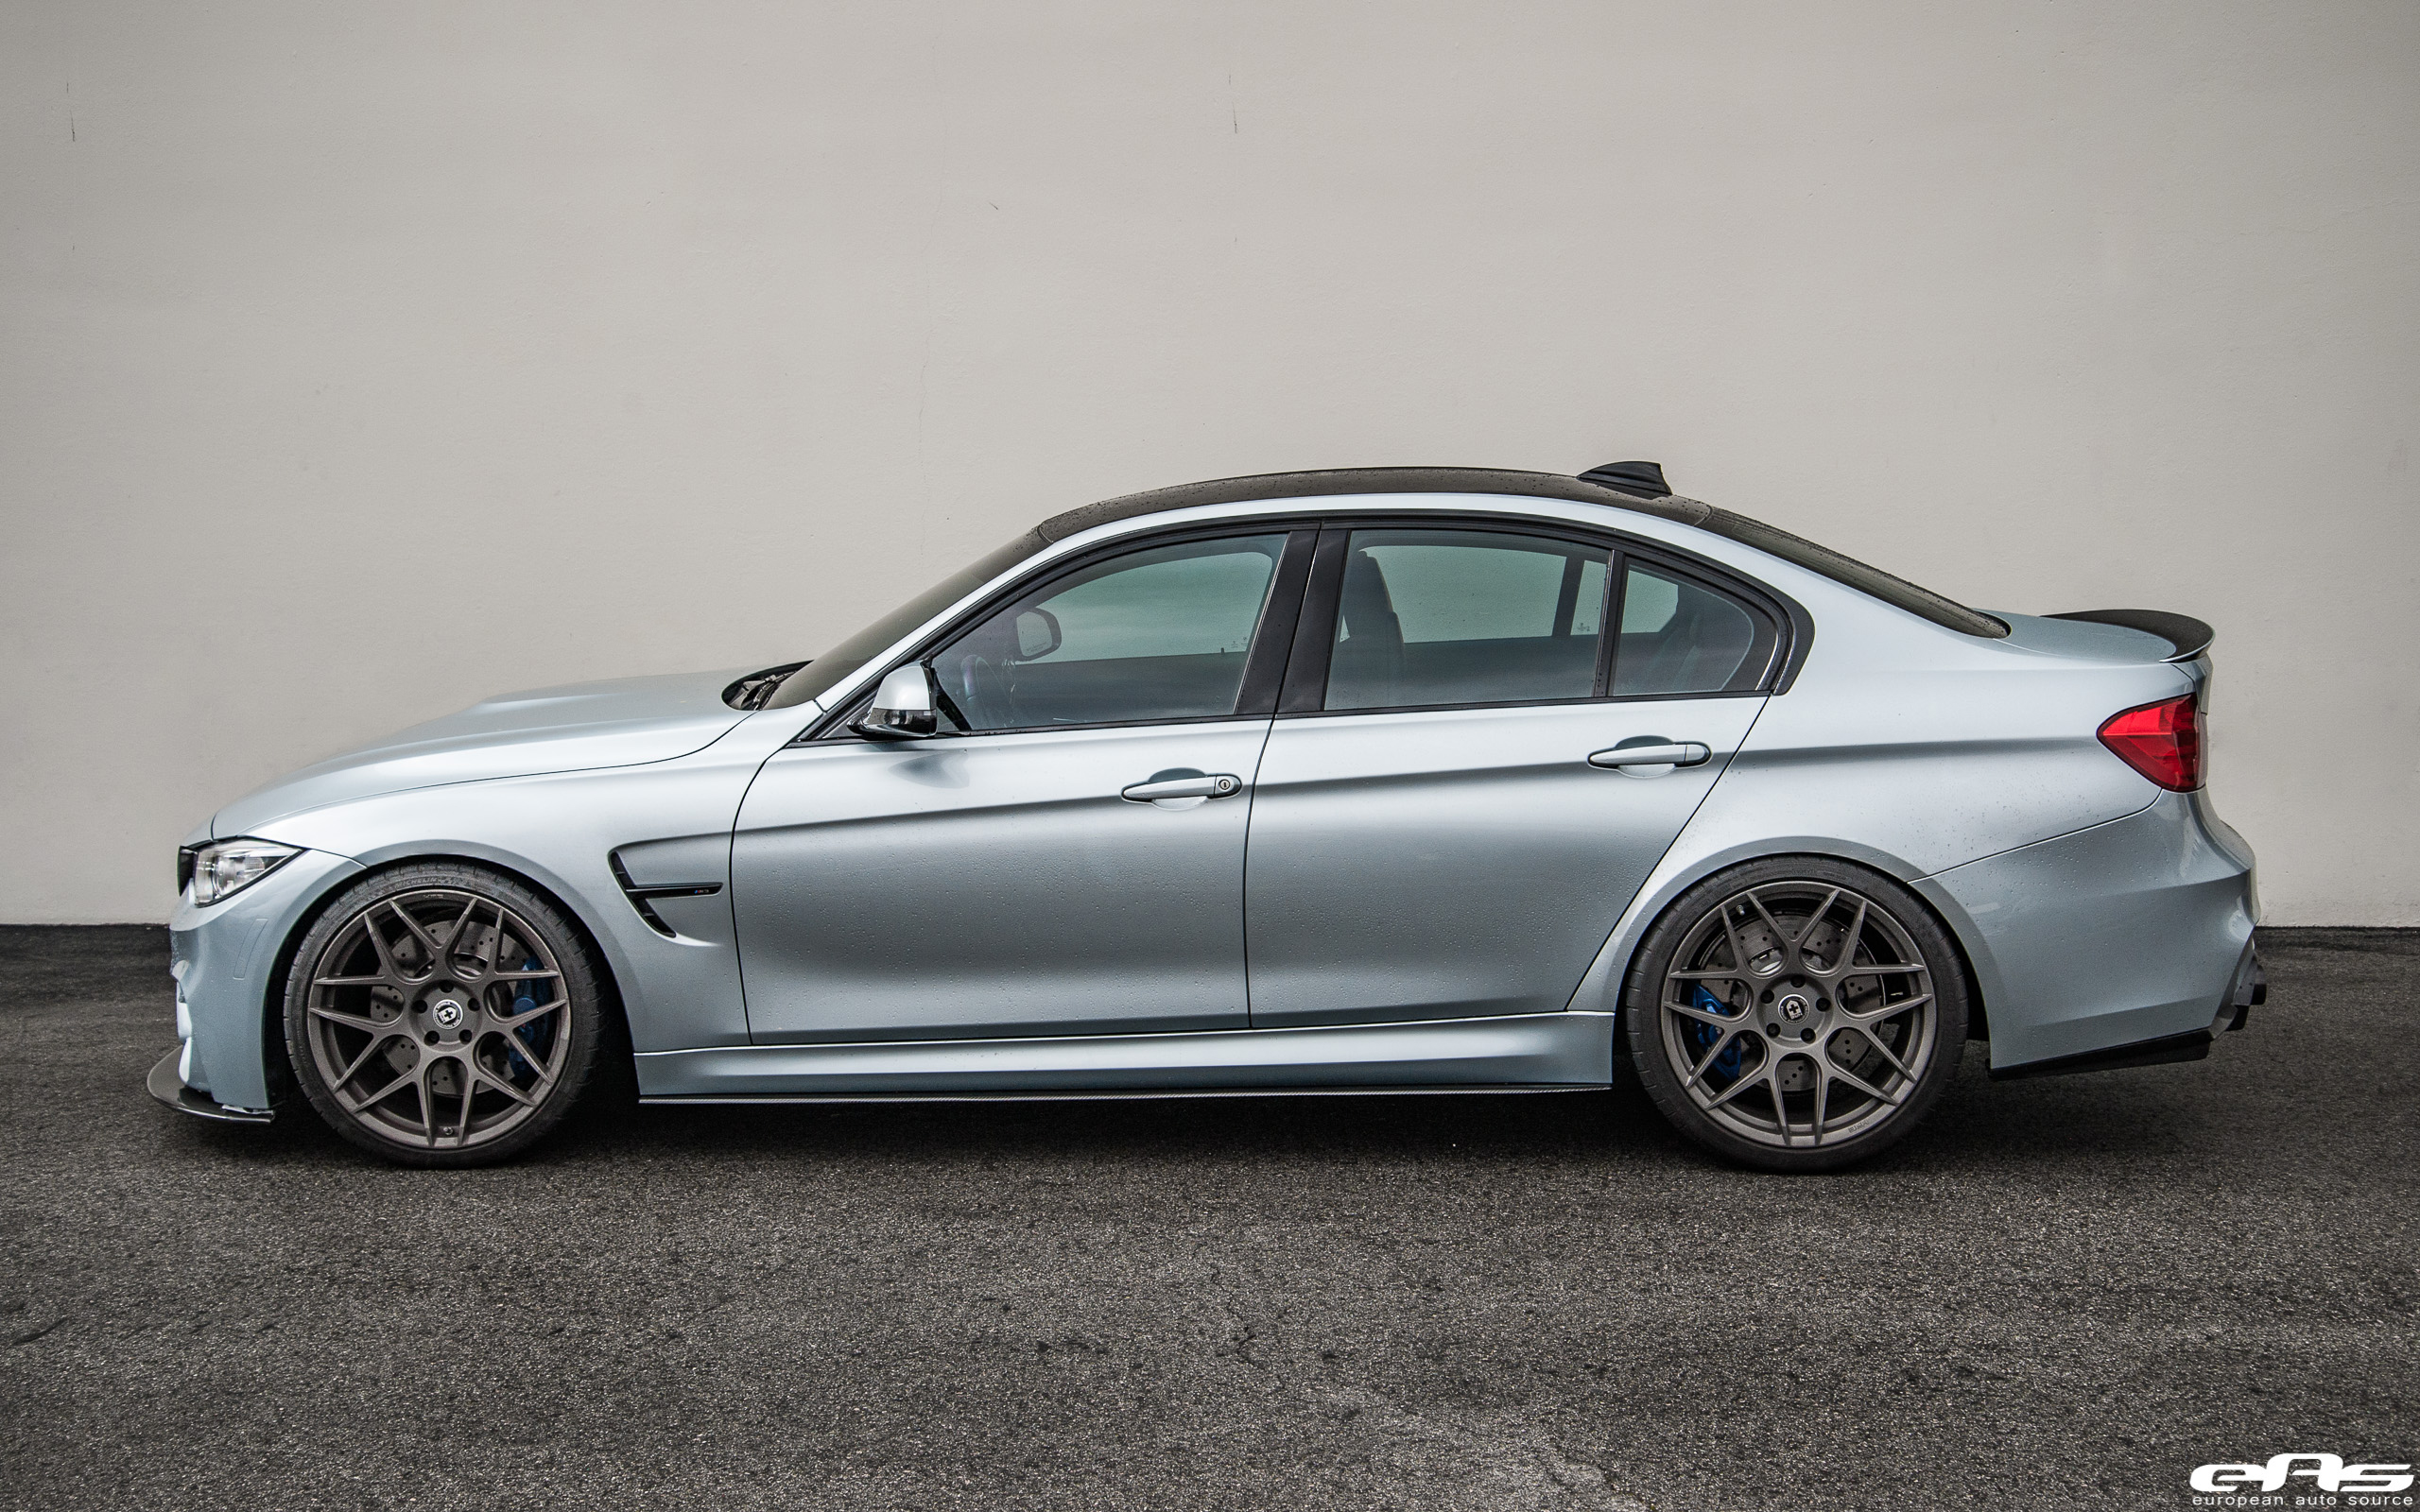 Elsa The F80 M3 Gets New Side Skirts Bmw Performance Parts Amp Services